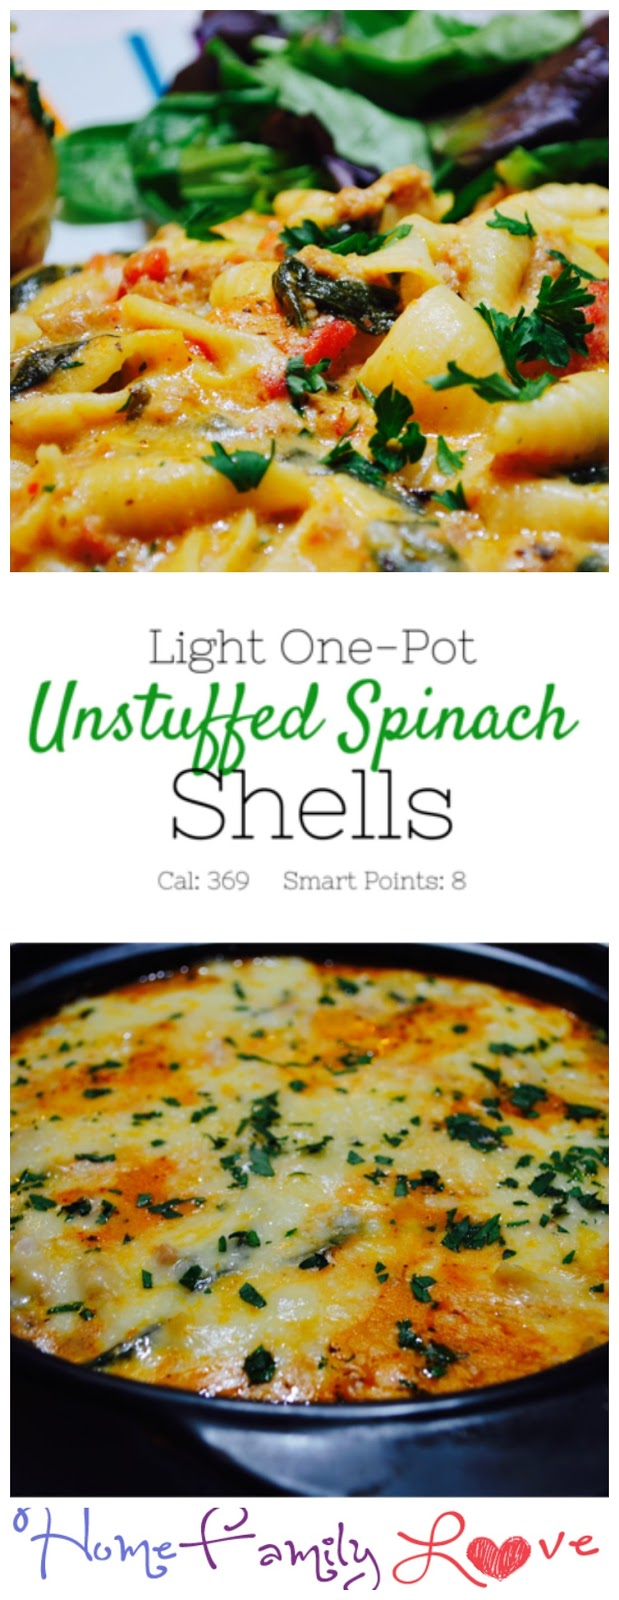 Healthy dinner ready in 30 minutes and goes great with a weight watchers meal plan.